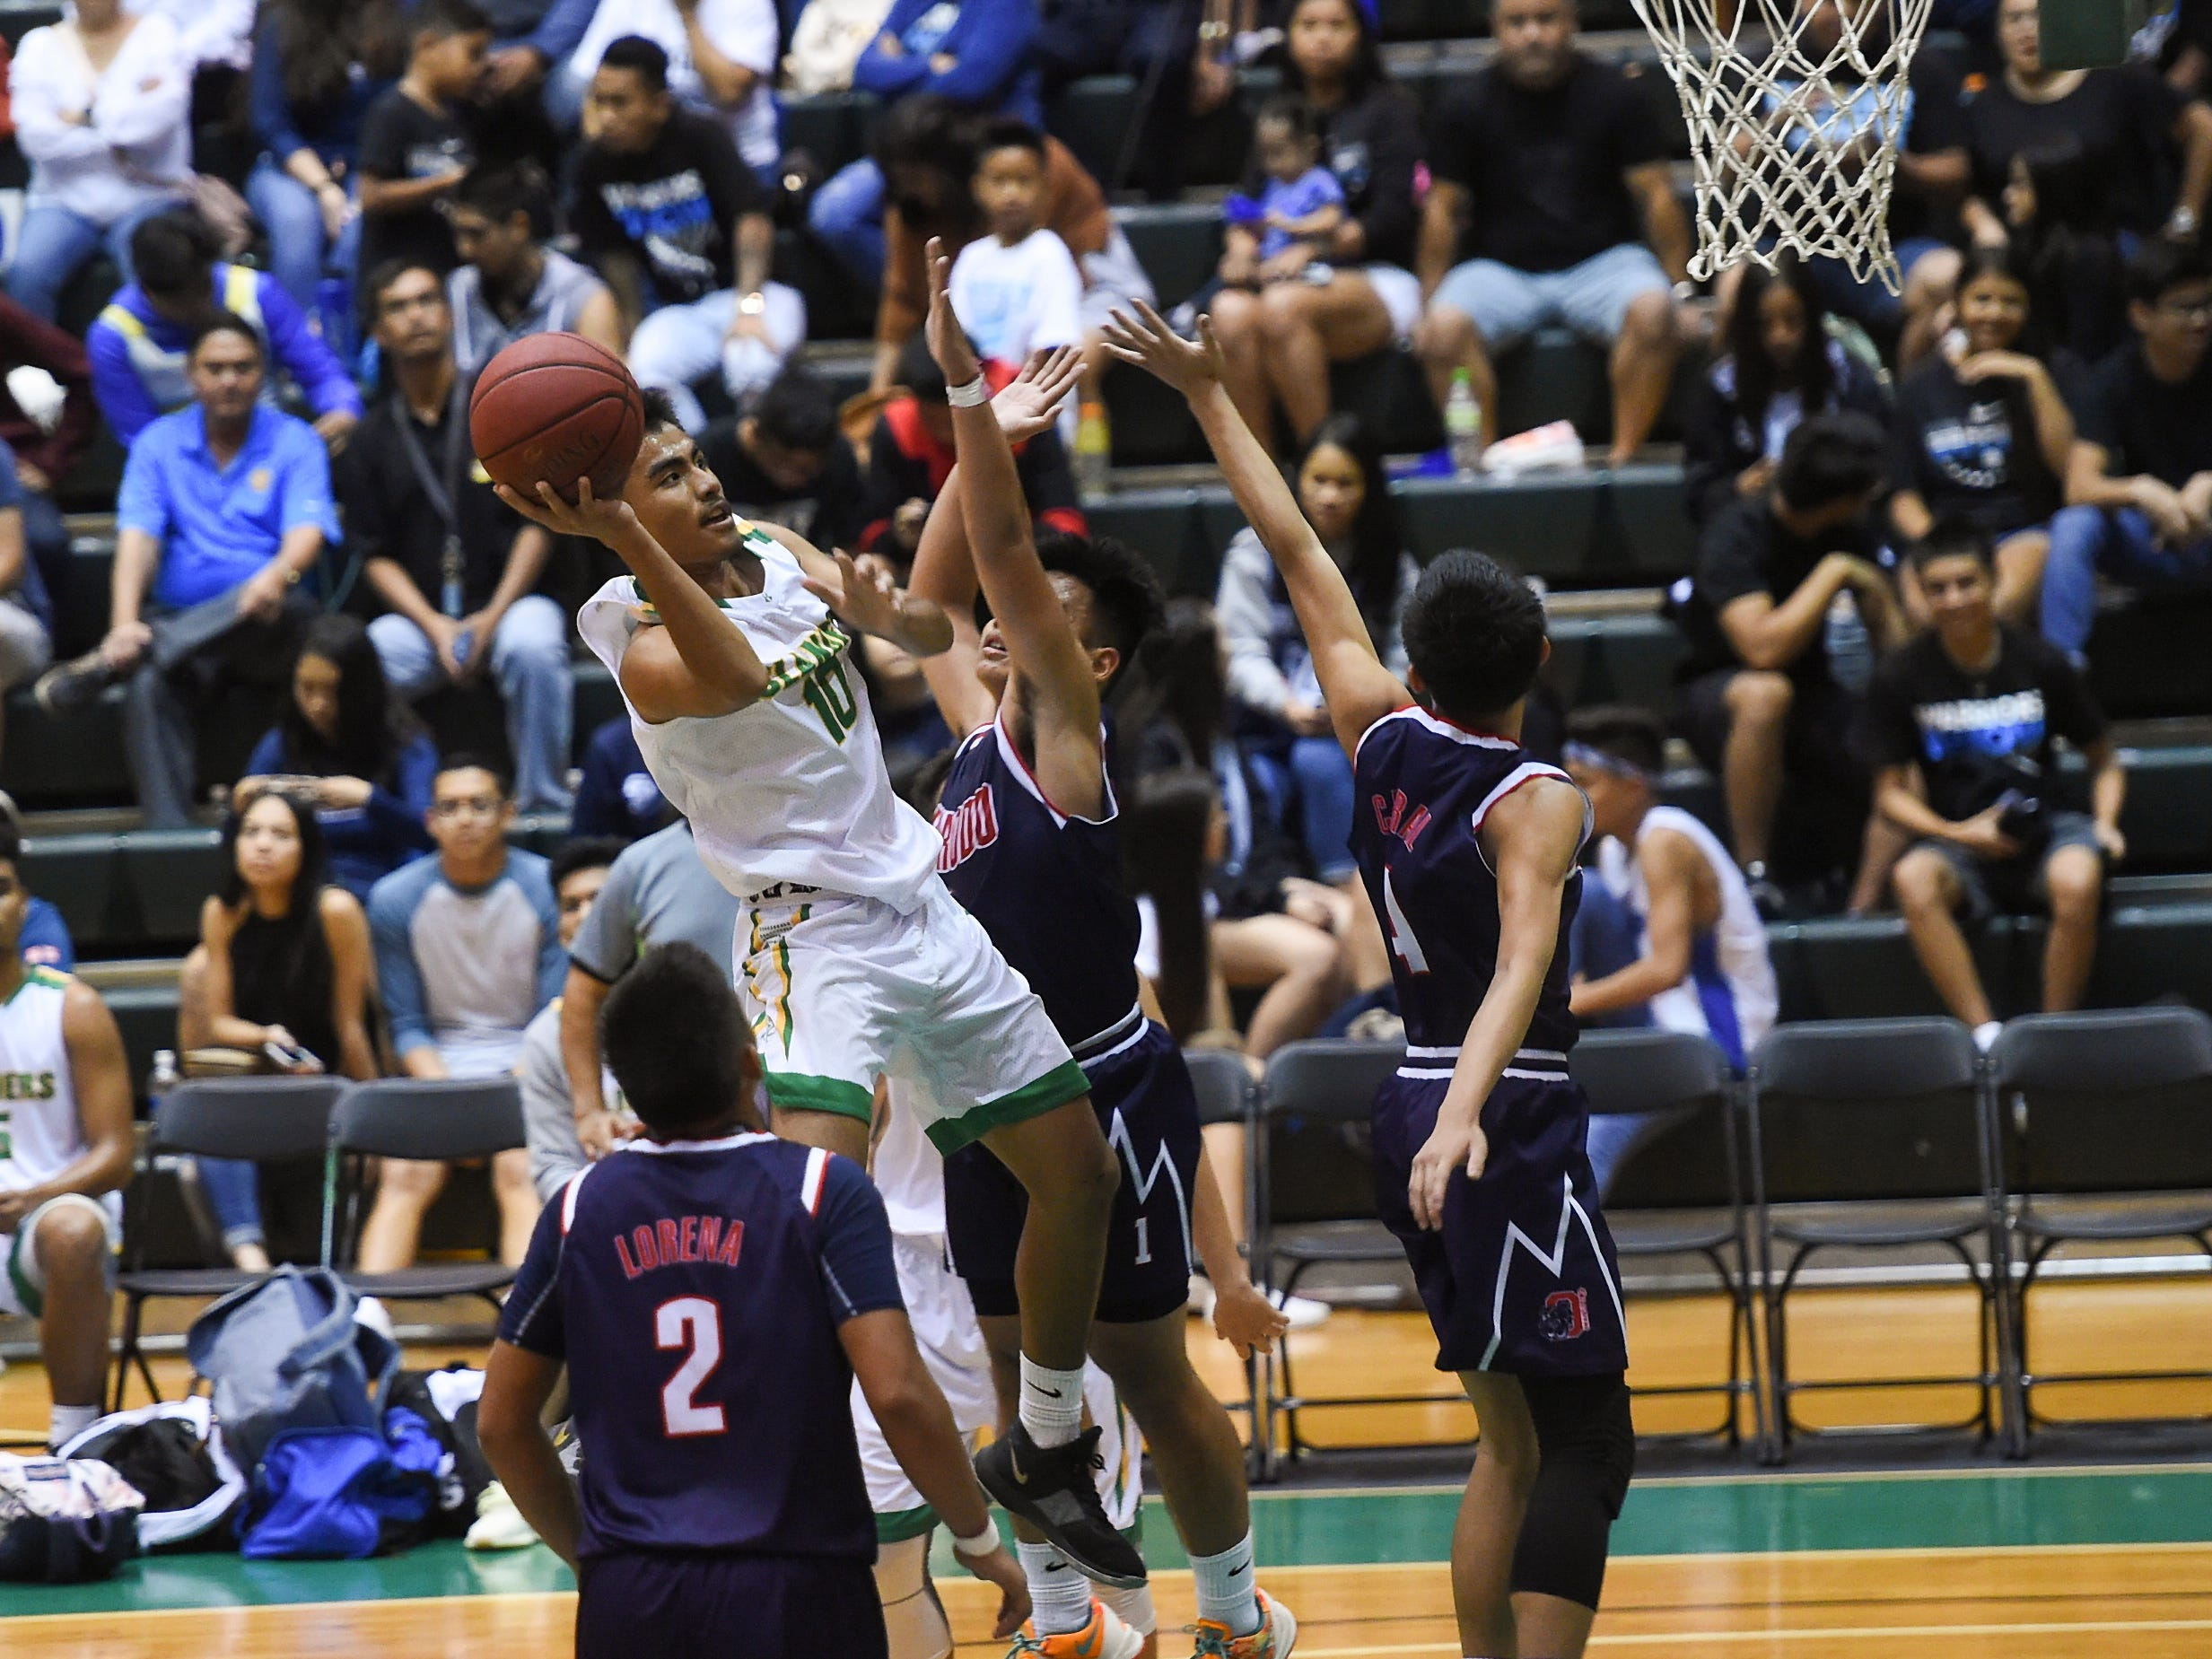 The Okkodo Bulldogs battle the John F. Kennedy Islanders during a IIAAG Boys' Basketball consolation game at the University of Guam Calvo Field House in Mangilao, March 15, 2019.